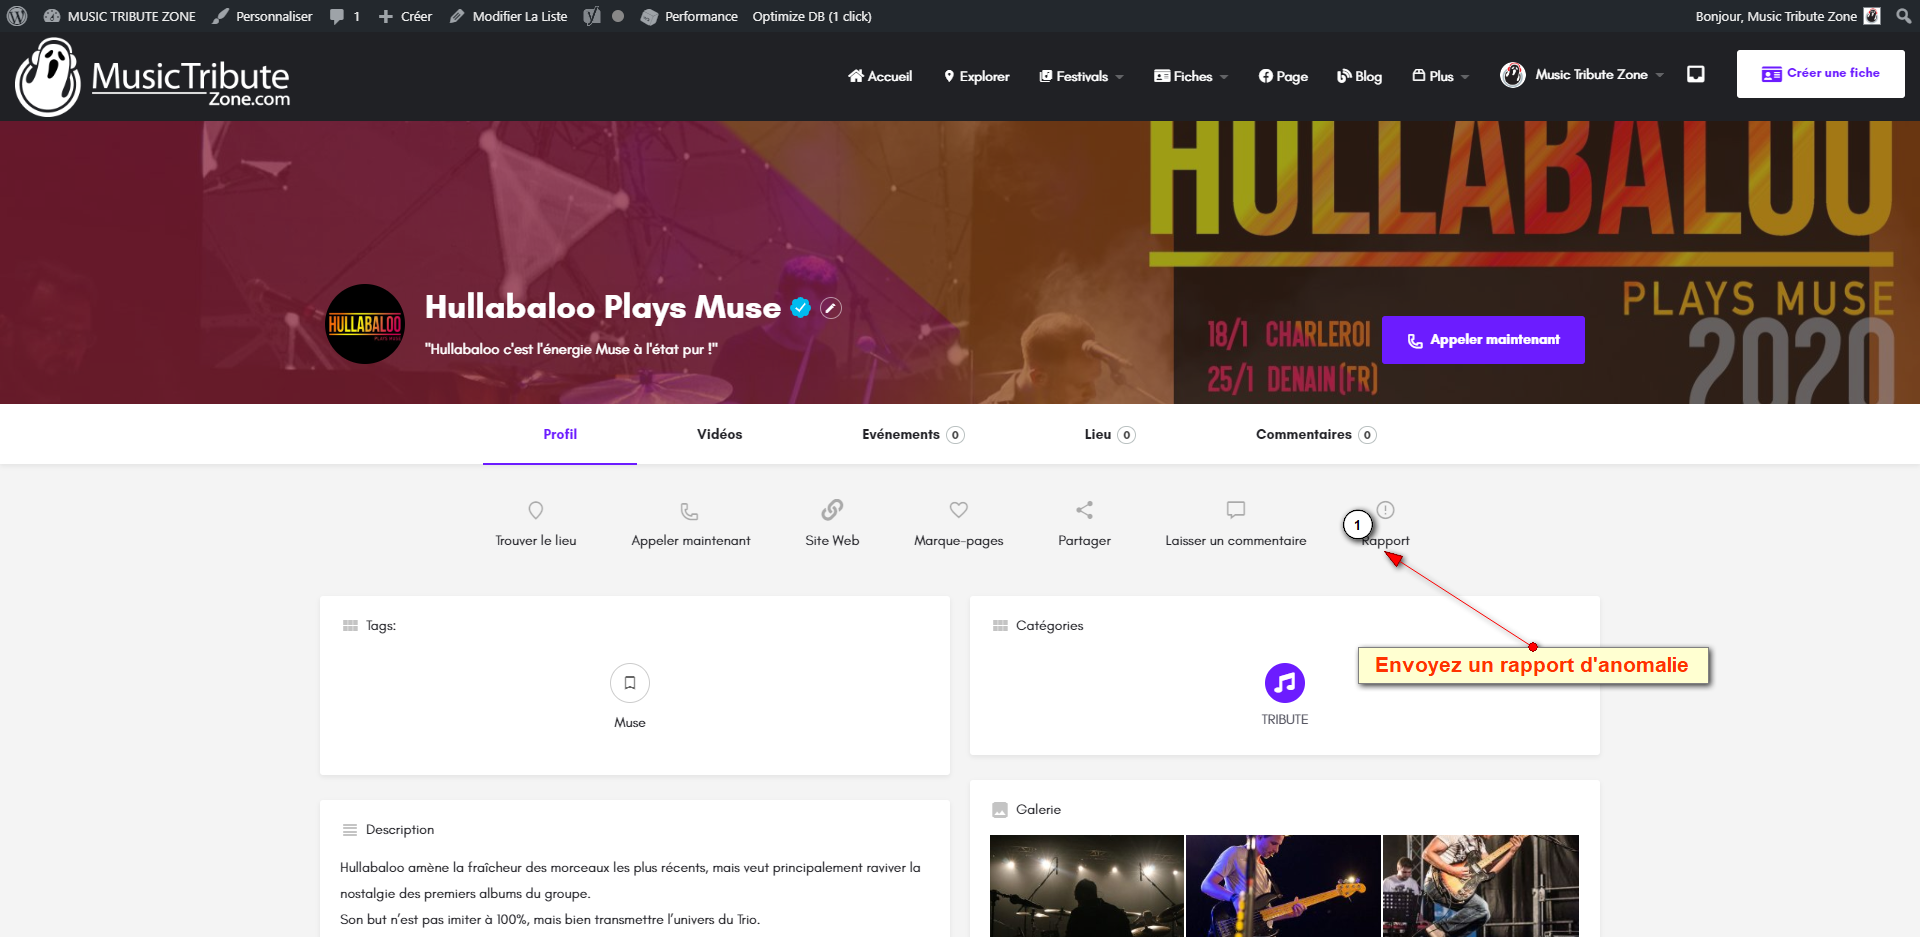 FireShot Pro Screen Capture #016 - 'Hullabaloo Plays Muse I MUSIC TRIBUTE ZONE' - music-tribute-zone_com